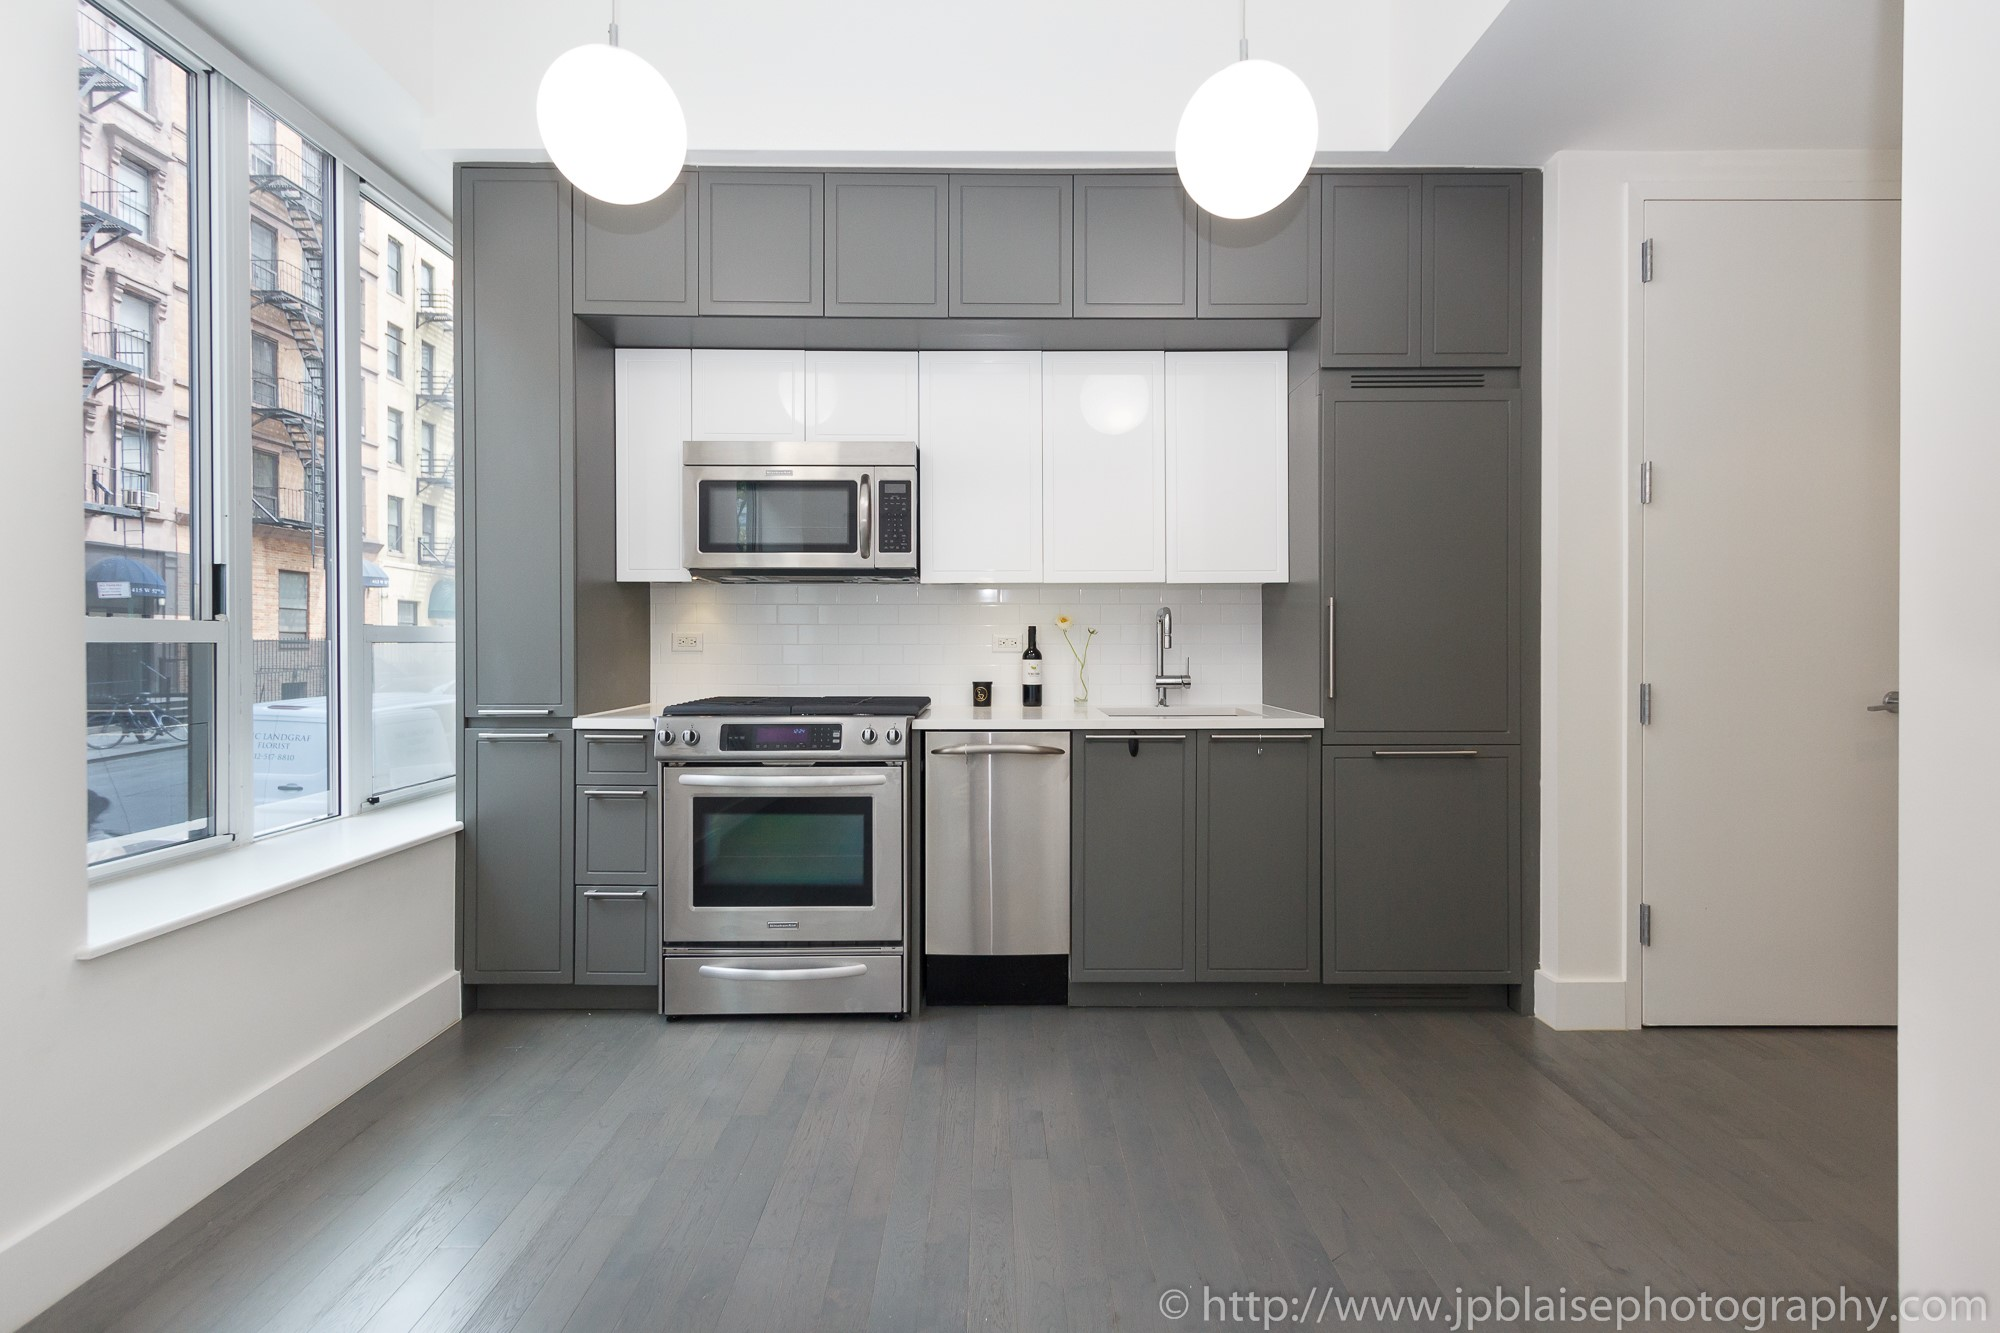 Real estate apartment photographer Midtown west 1 bedroom unit kitchen